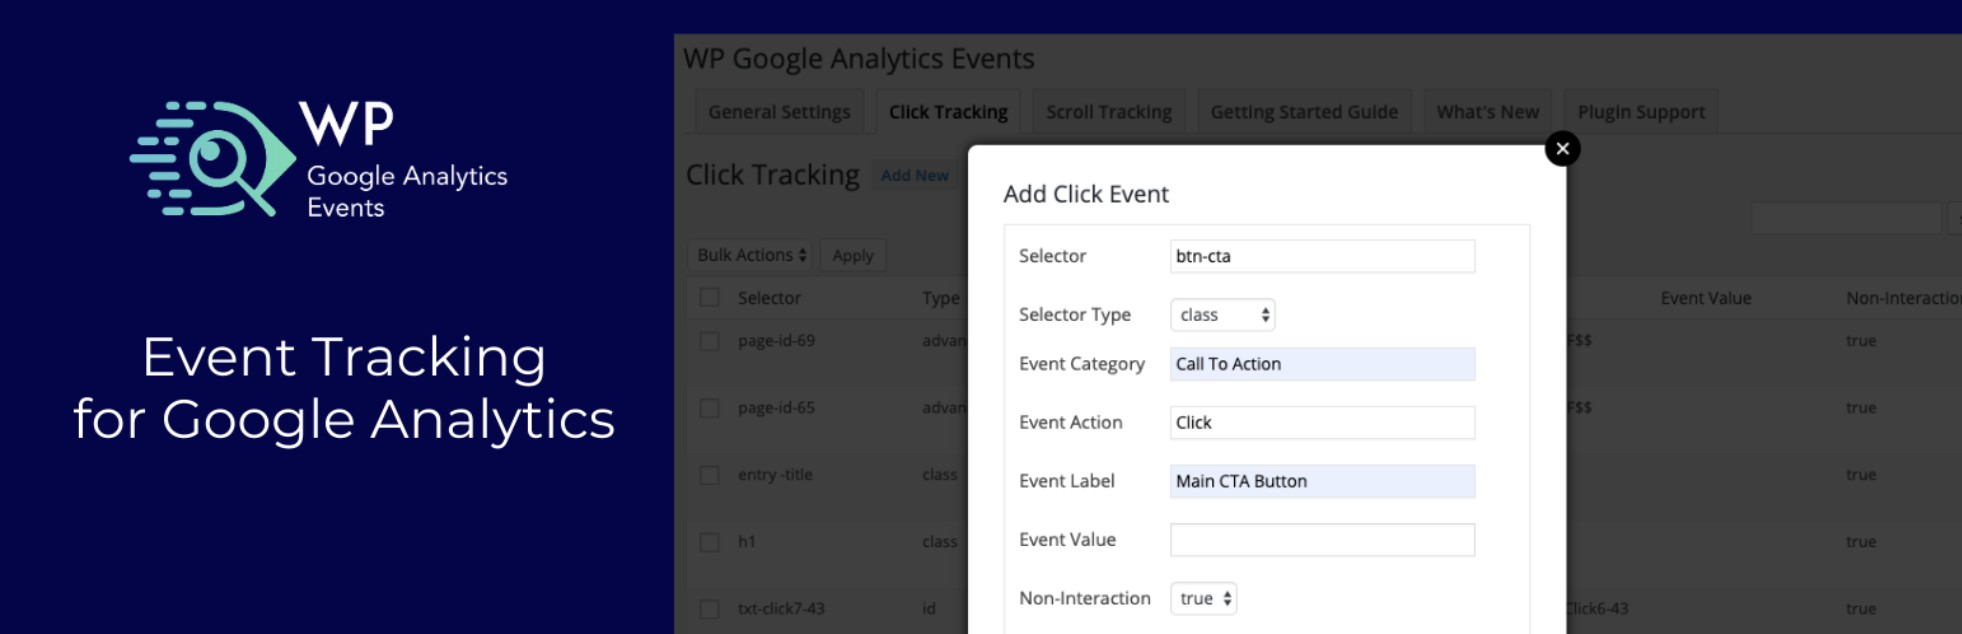 Complemento de eventos de WP Google Analytics